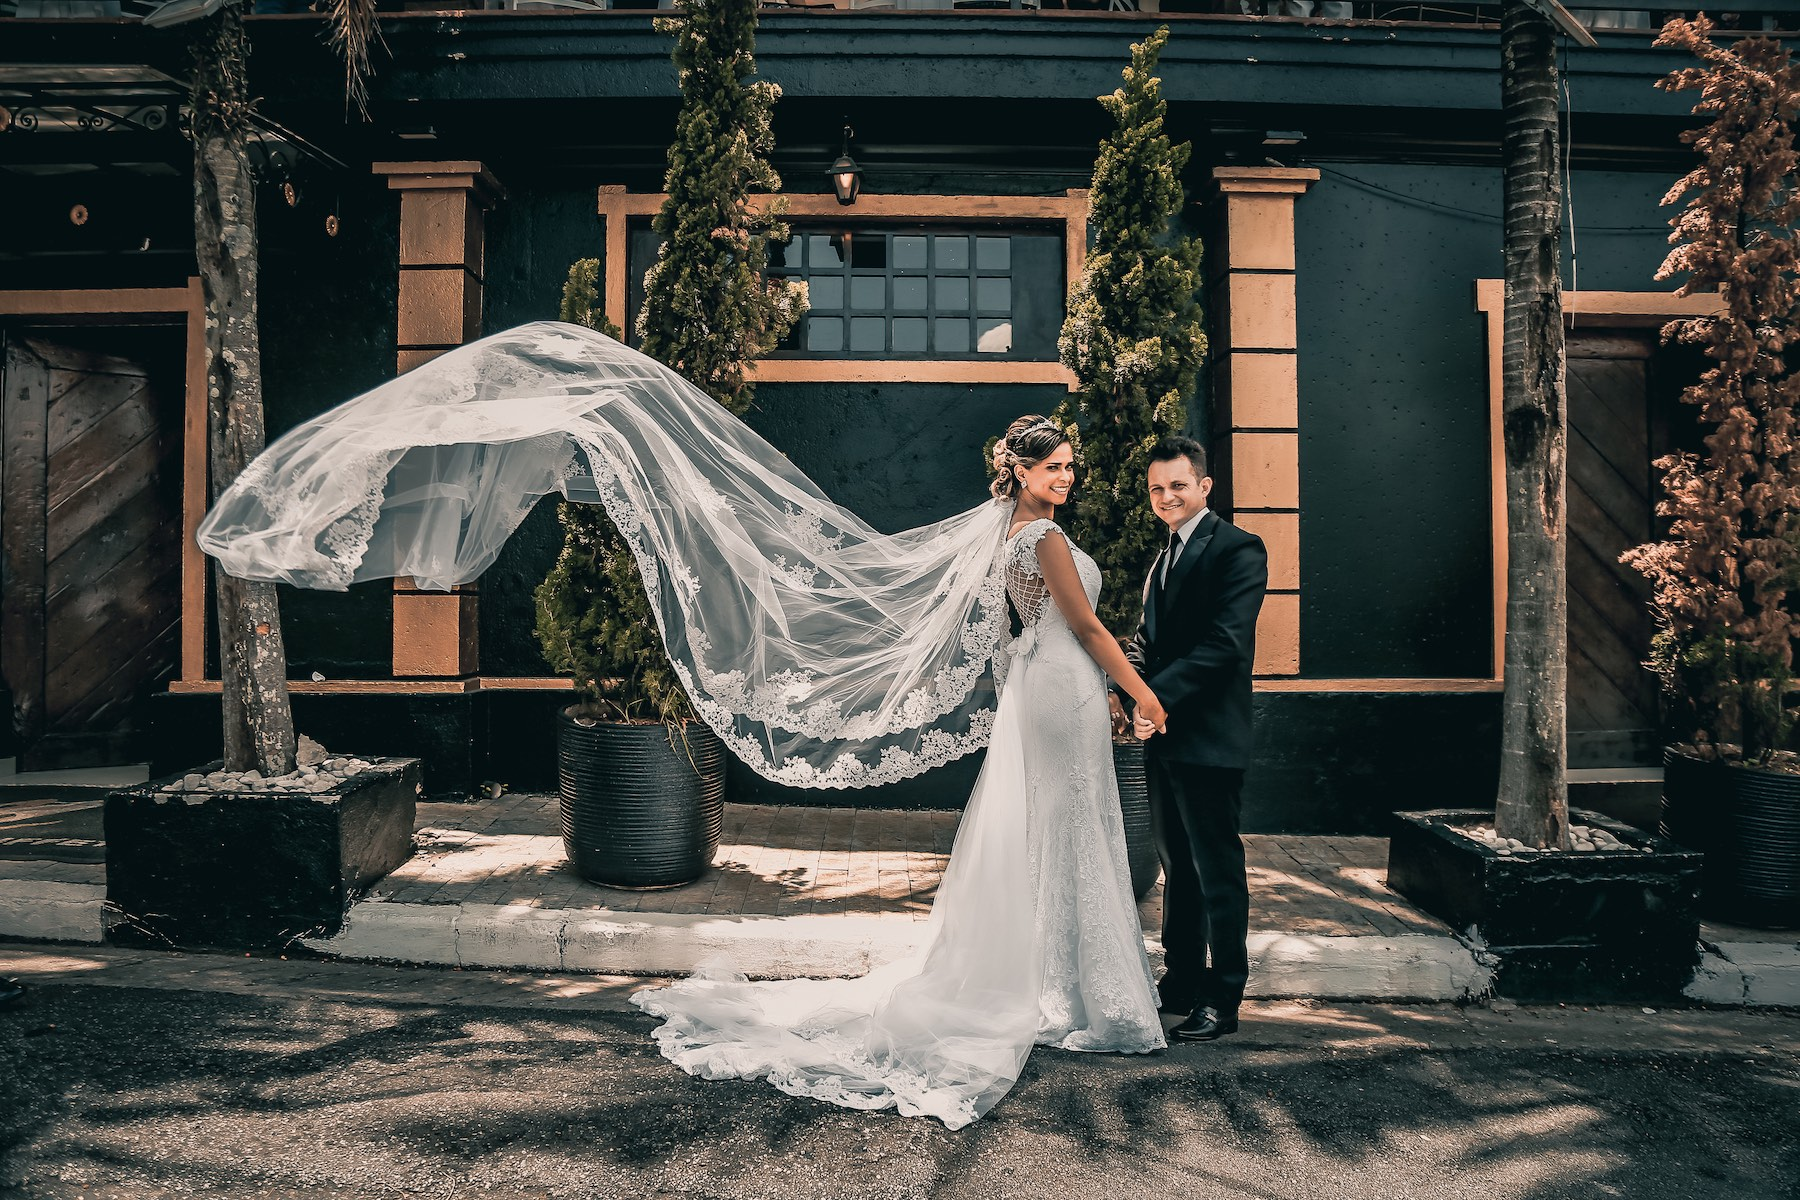 The Much Needed Wedding Checklist for a Bride and Groom